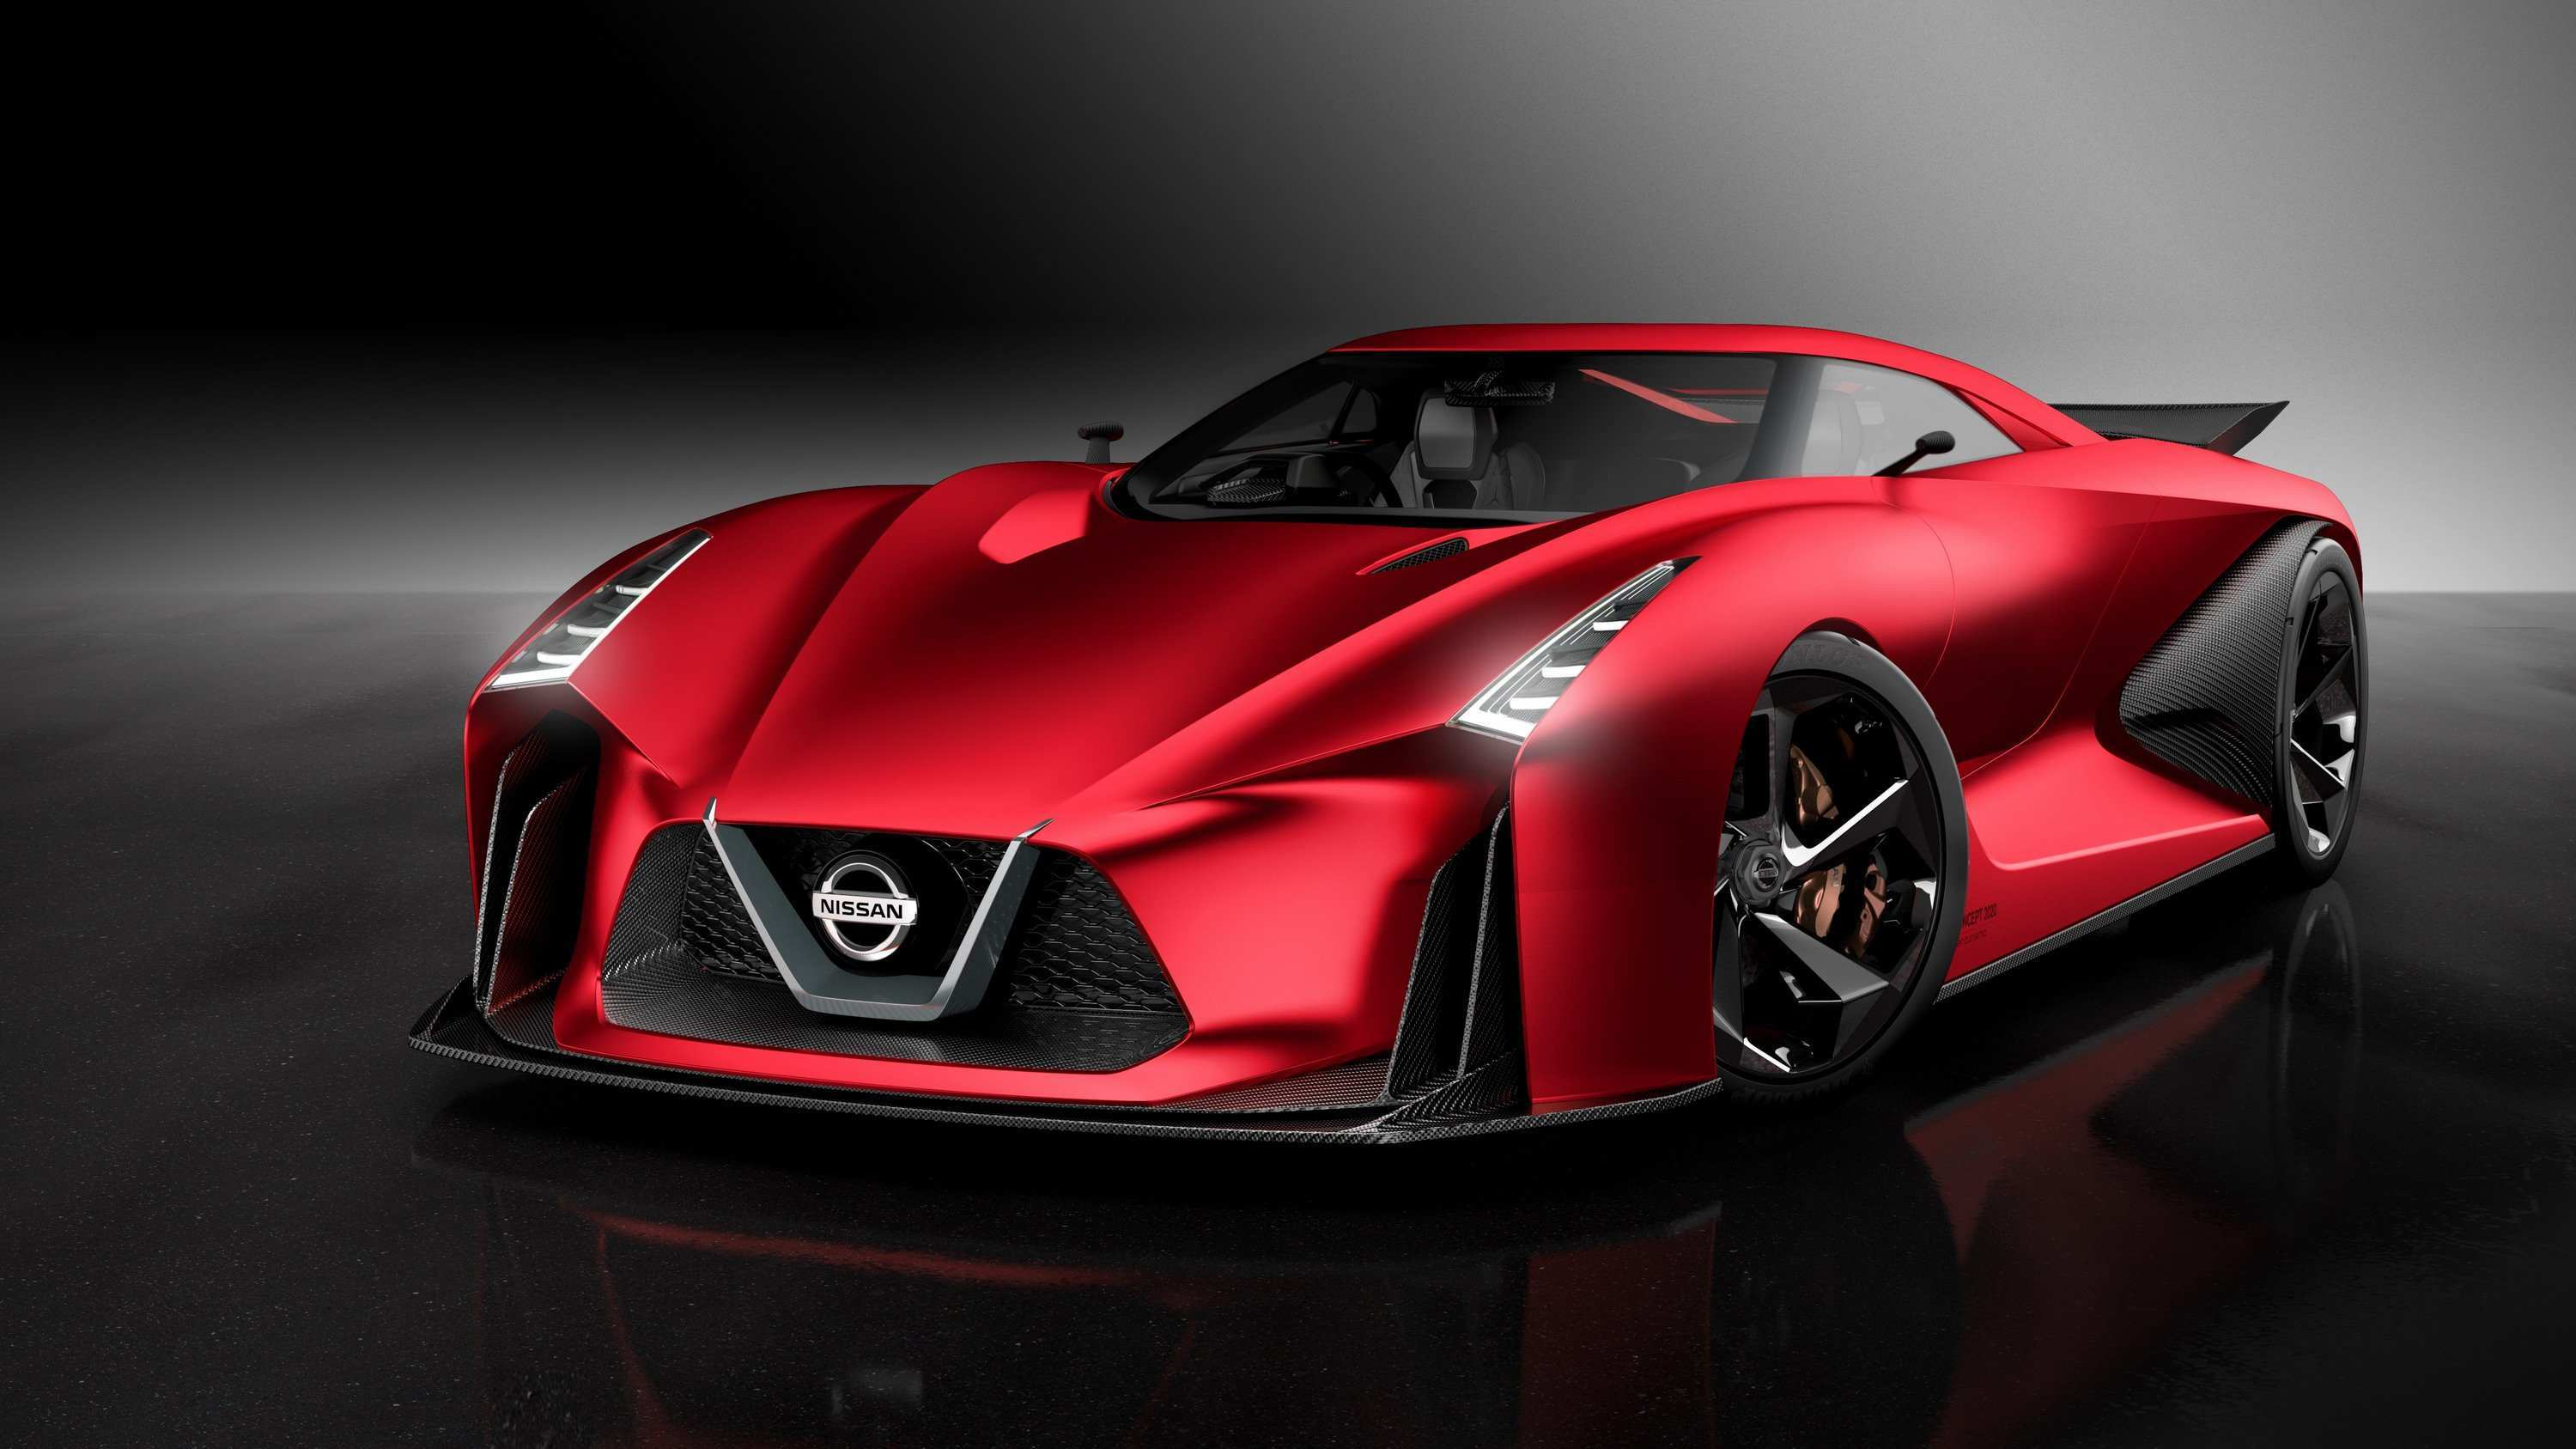 19 New Nissan Gt 2020 New Review by Nissan Gt 2020